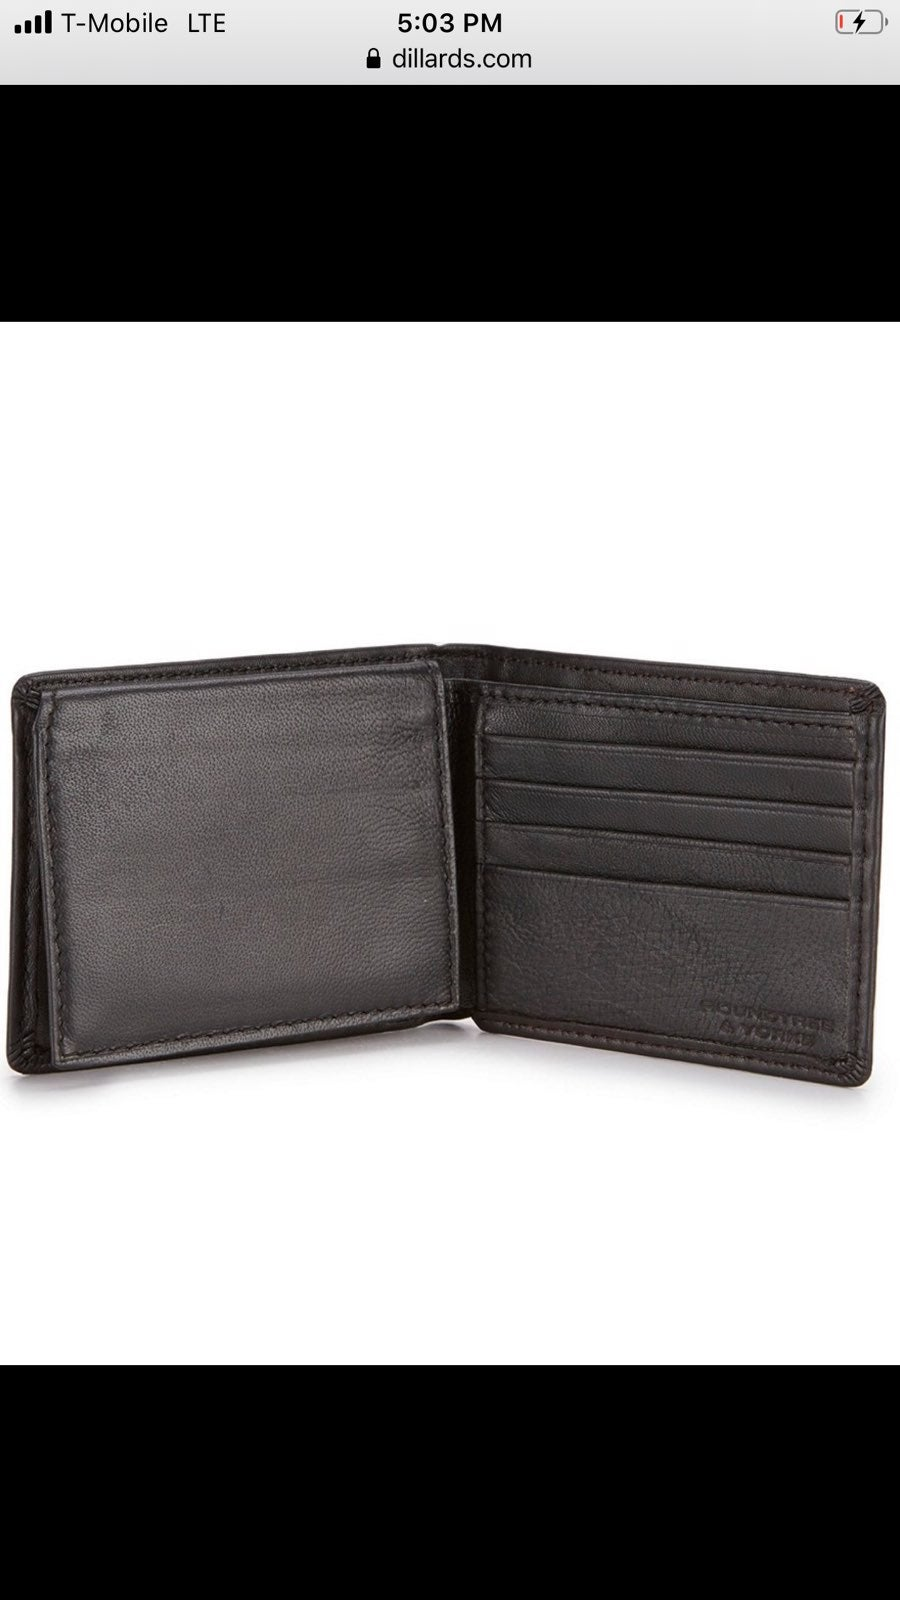 Roundtree and Yorke Wallet